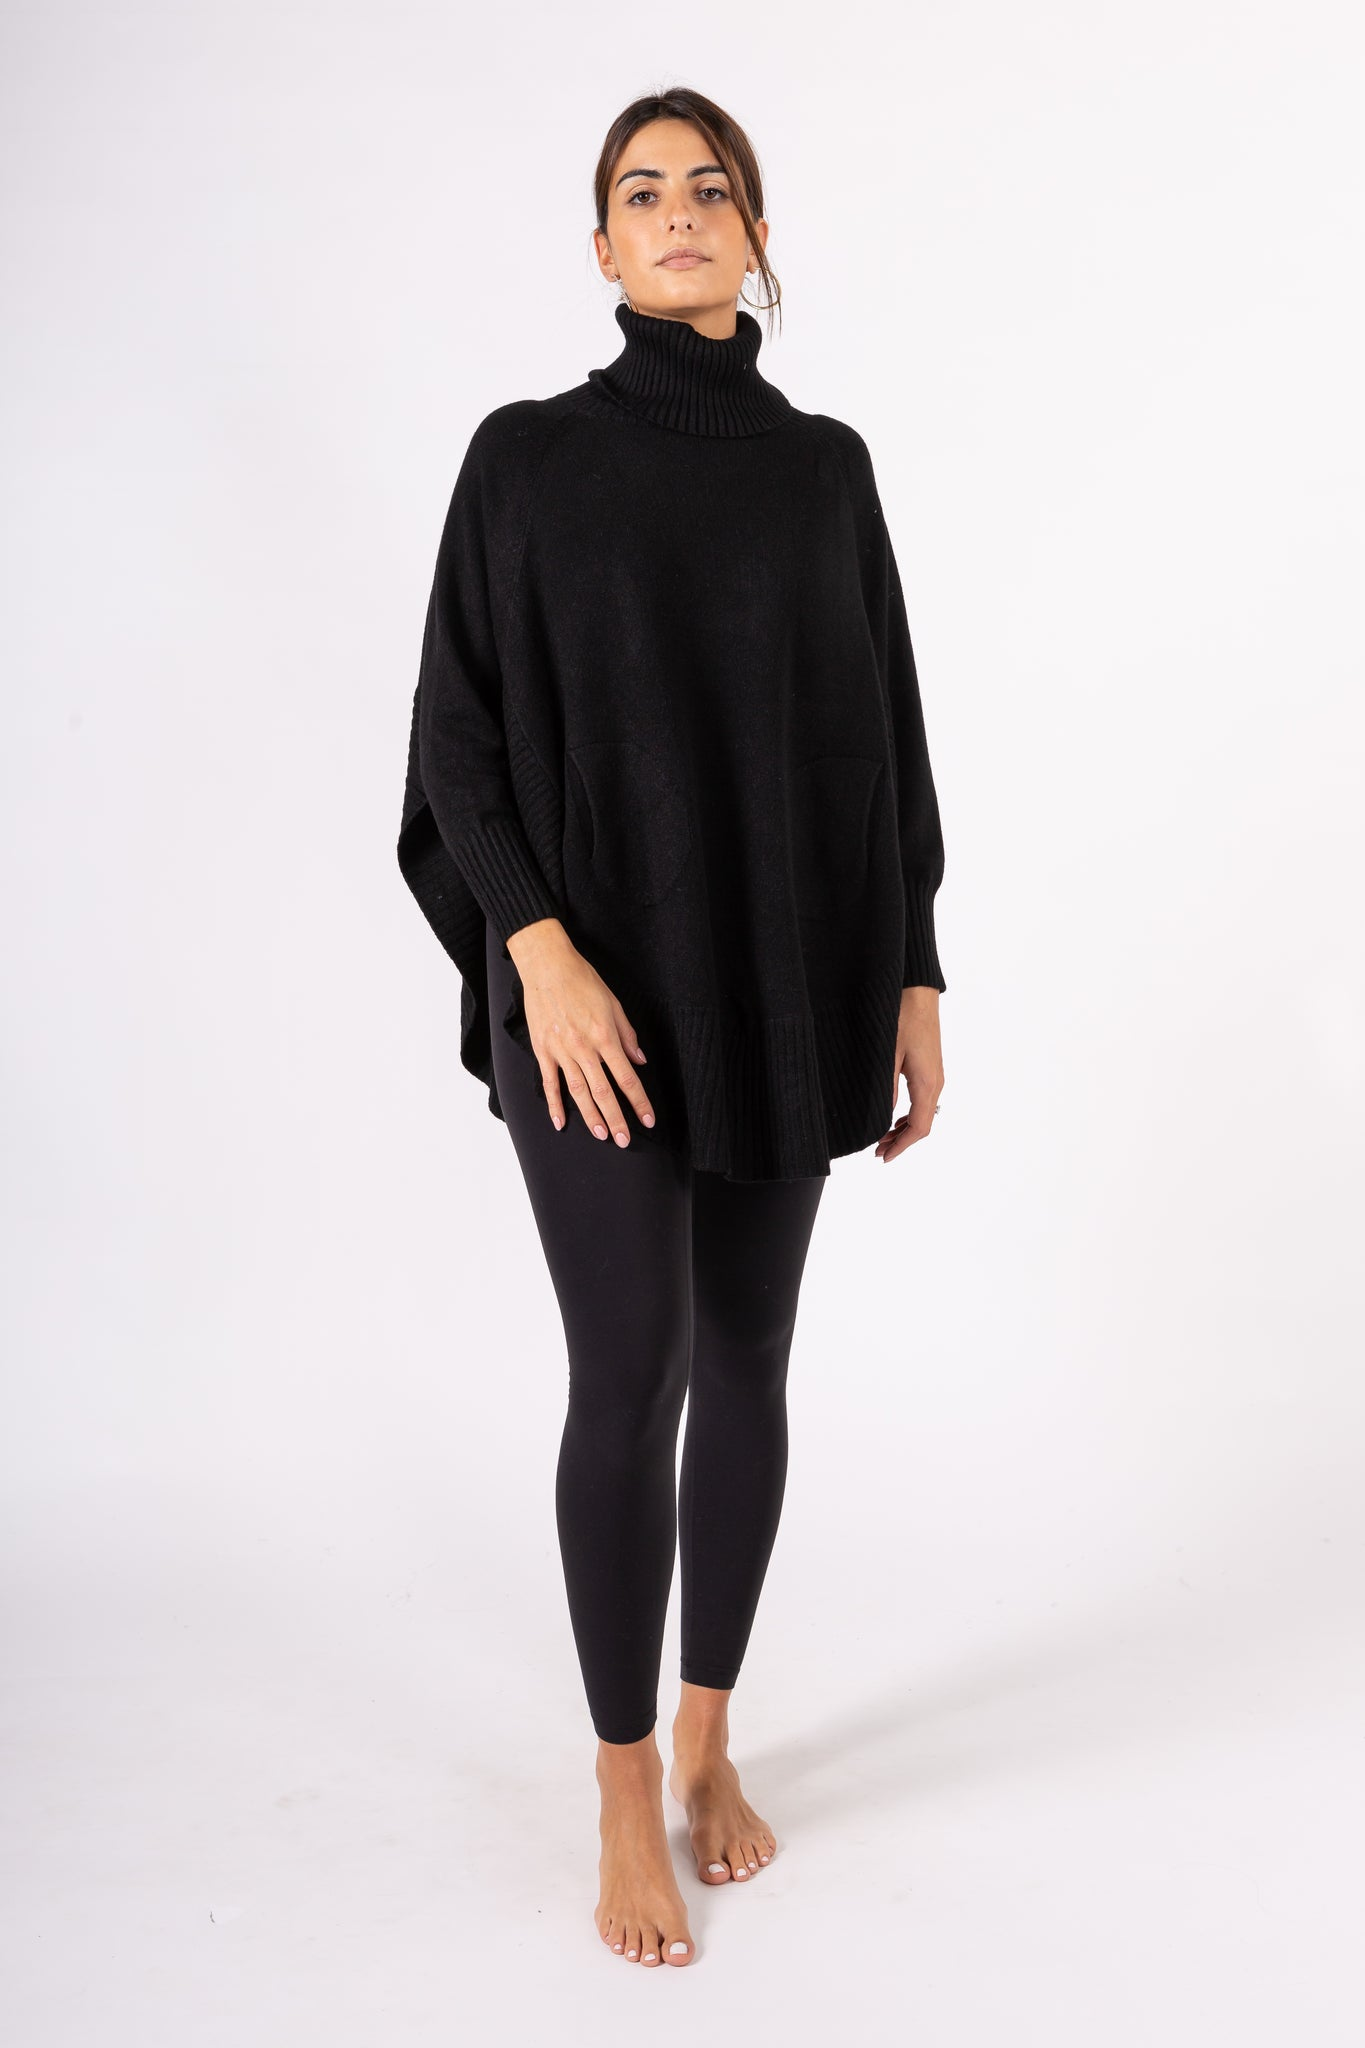 Turtleneck pullover with pockets and open side